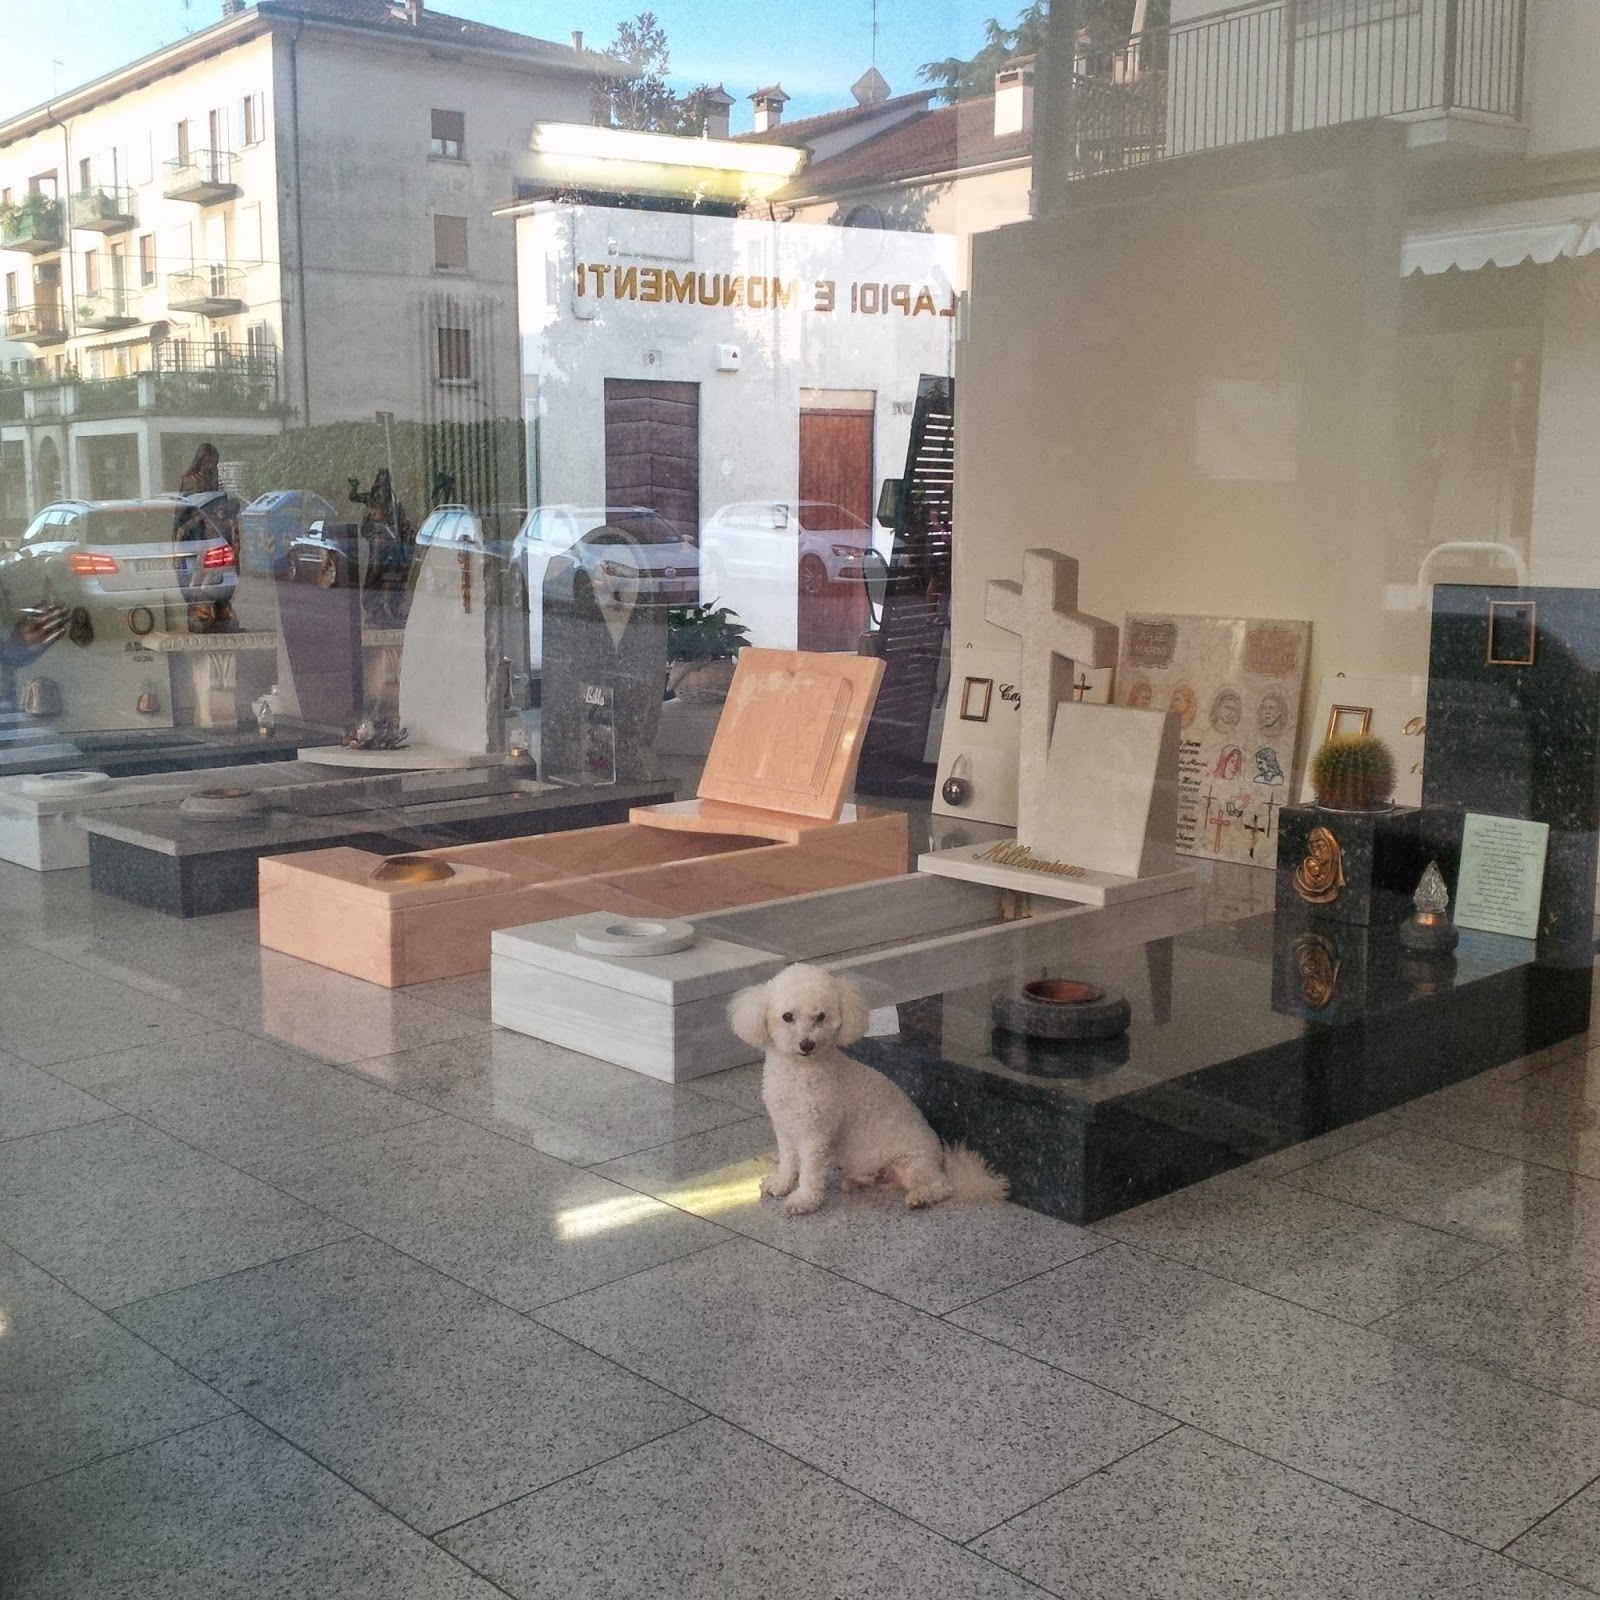 A cute little dog spends his days in this funeral shop